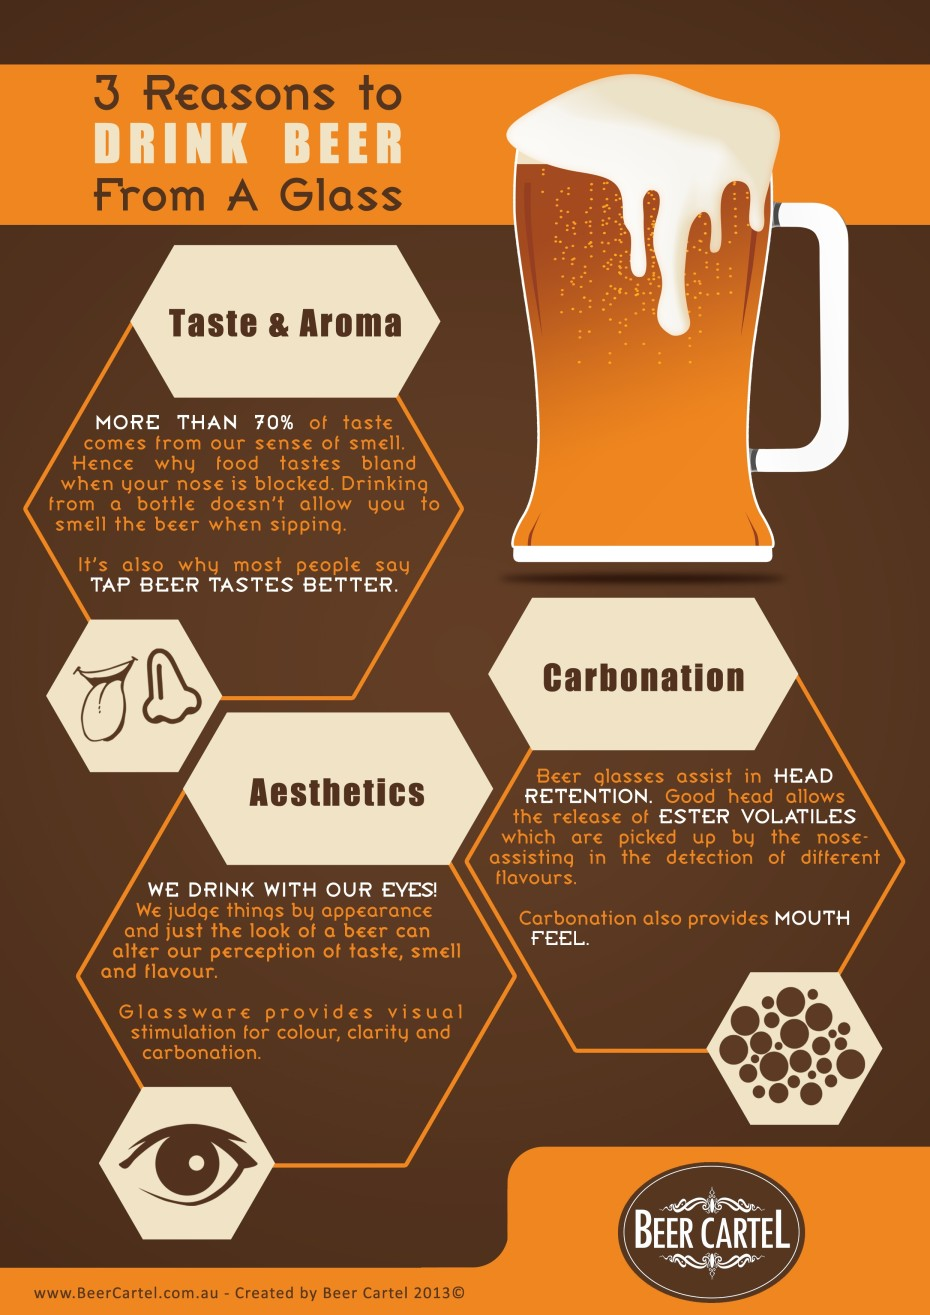 3-reasons-to-drink-beer-from-a-glass